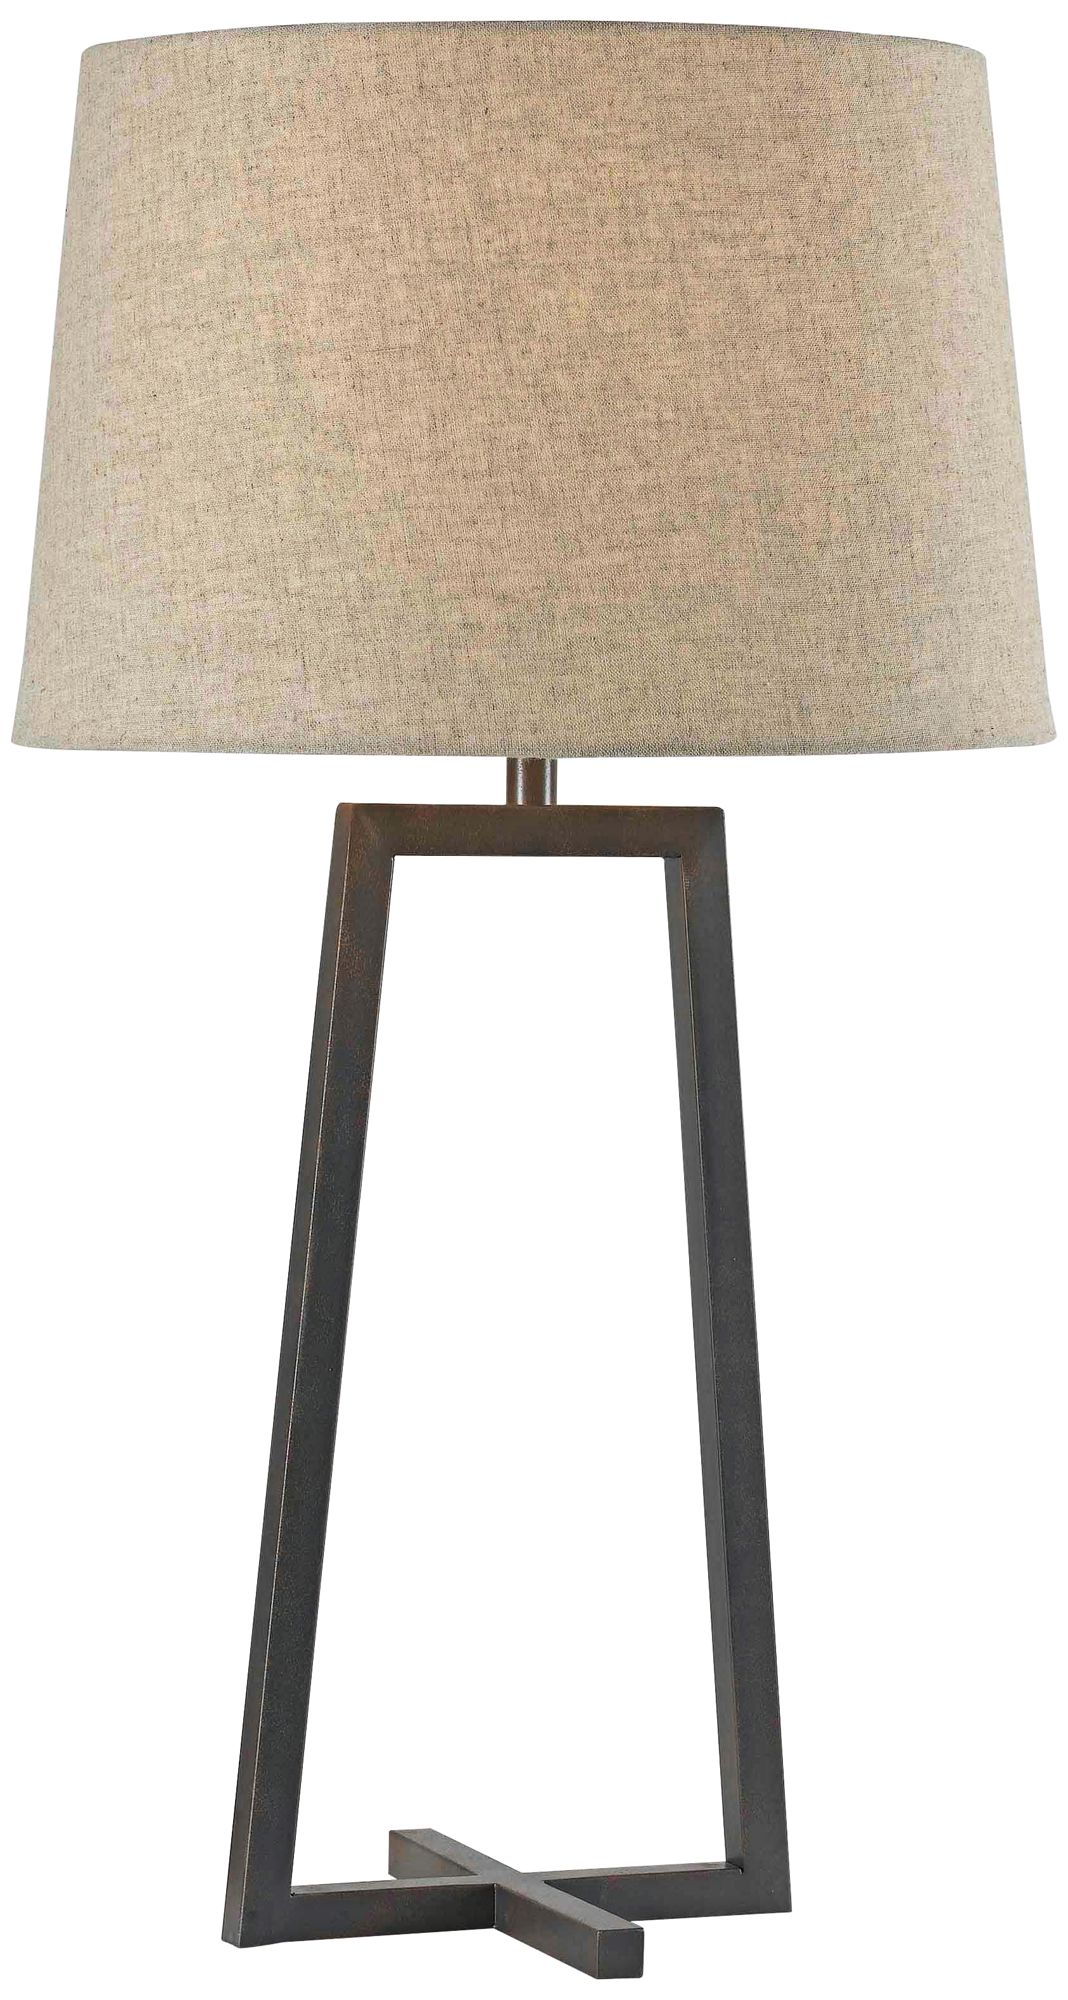 Lovely Kenroy Home Ranger Oil Rubbed Bronze Table Lamp